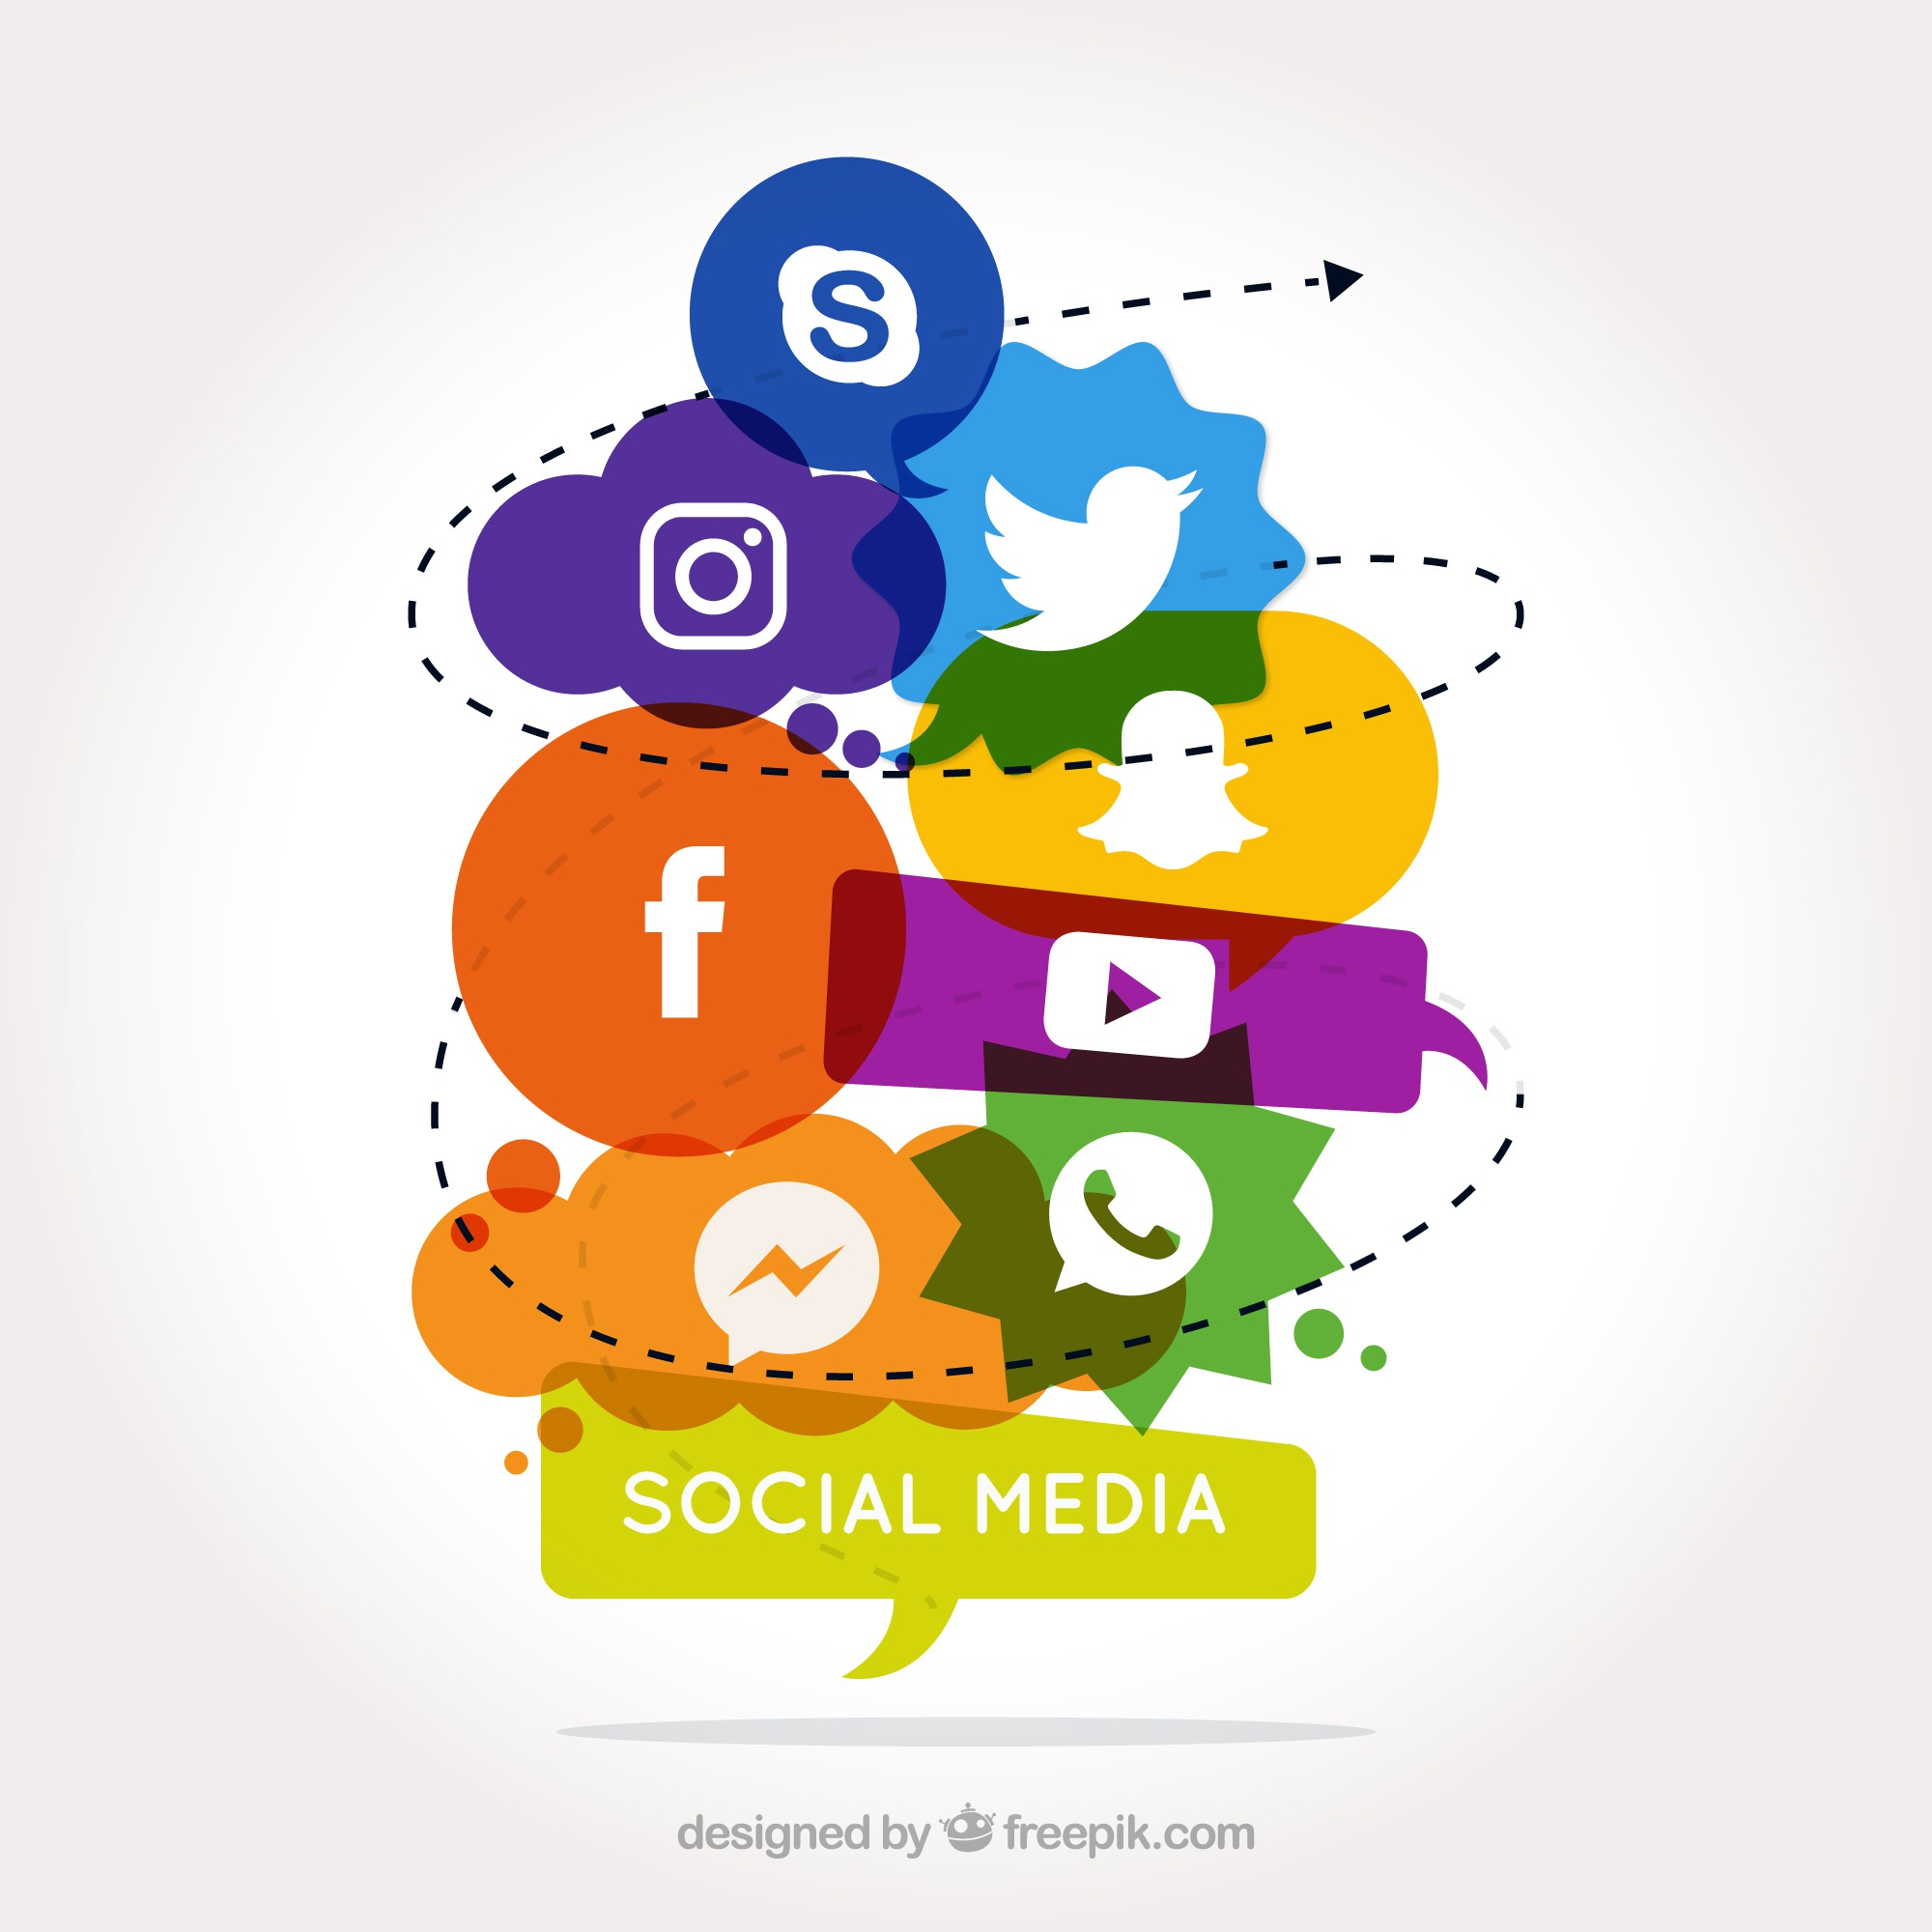 Social media background with colored forms